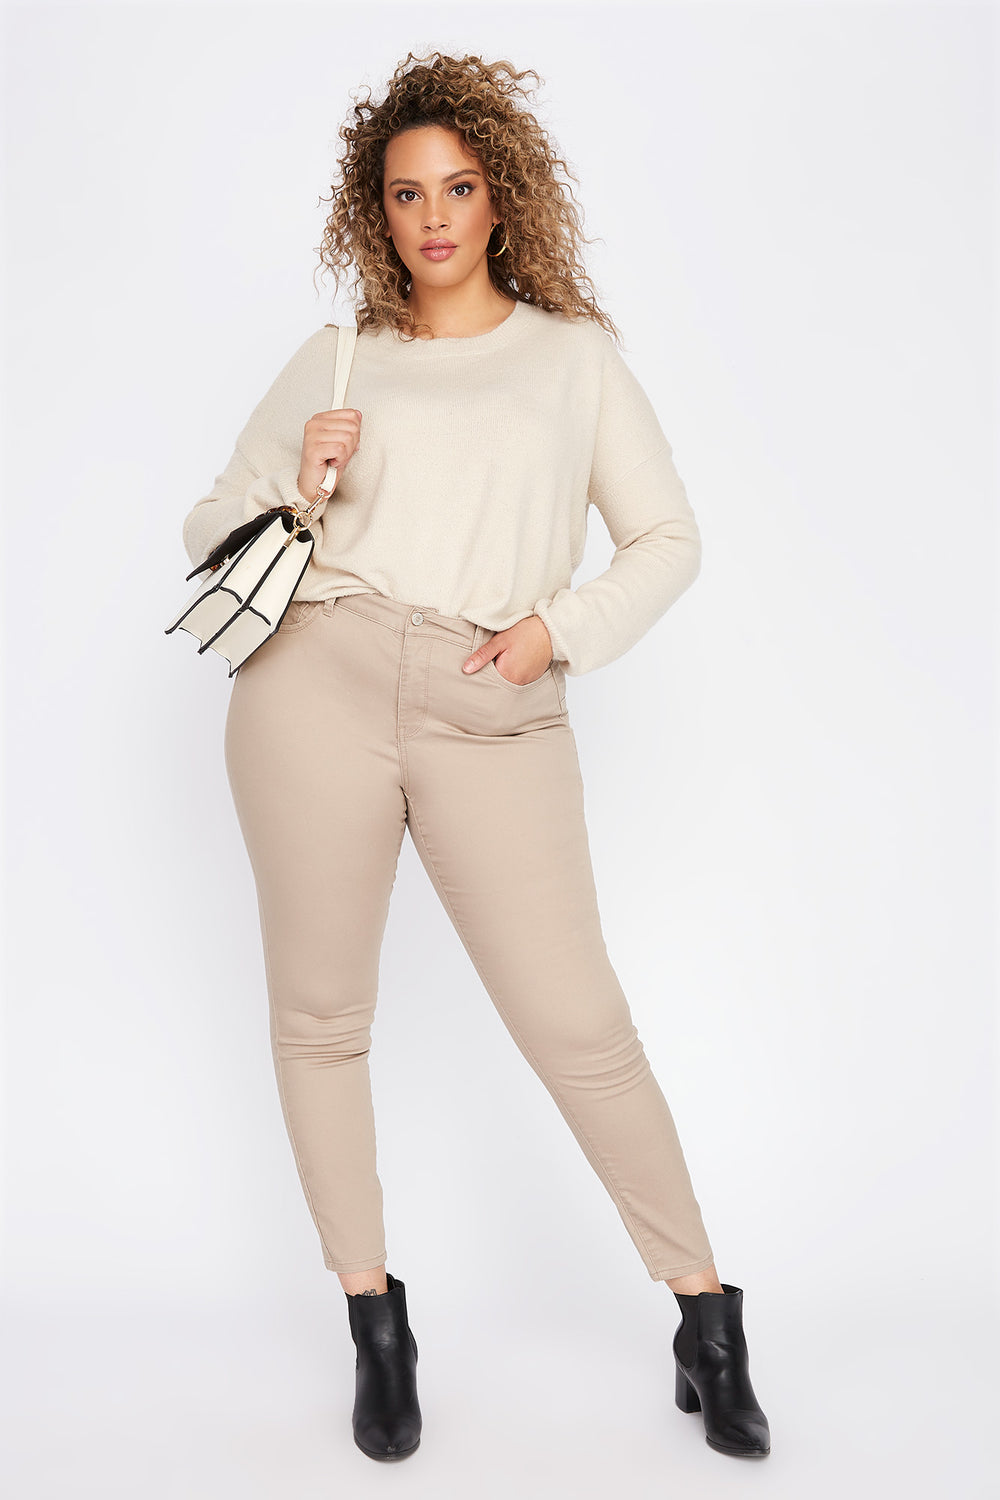 Plus Size Butt, I Love You High-Rise Twill Push-Up Skinny Jean Khaki